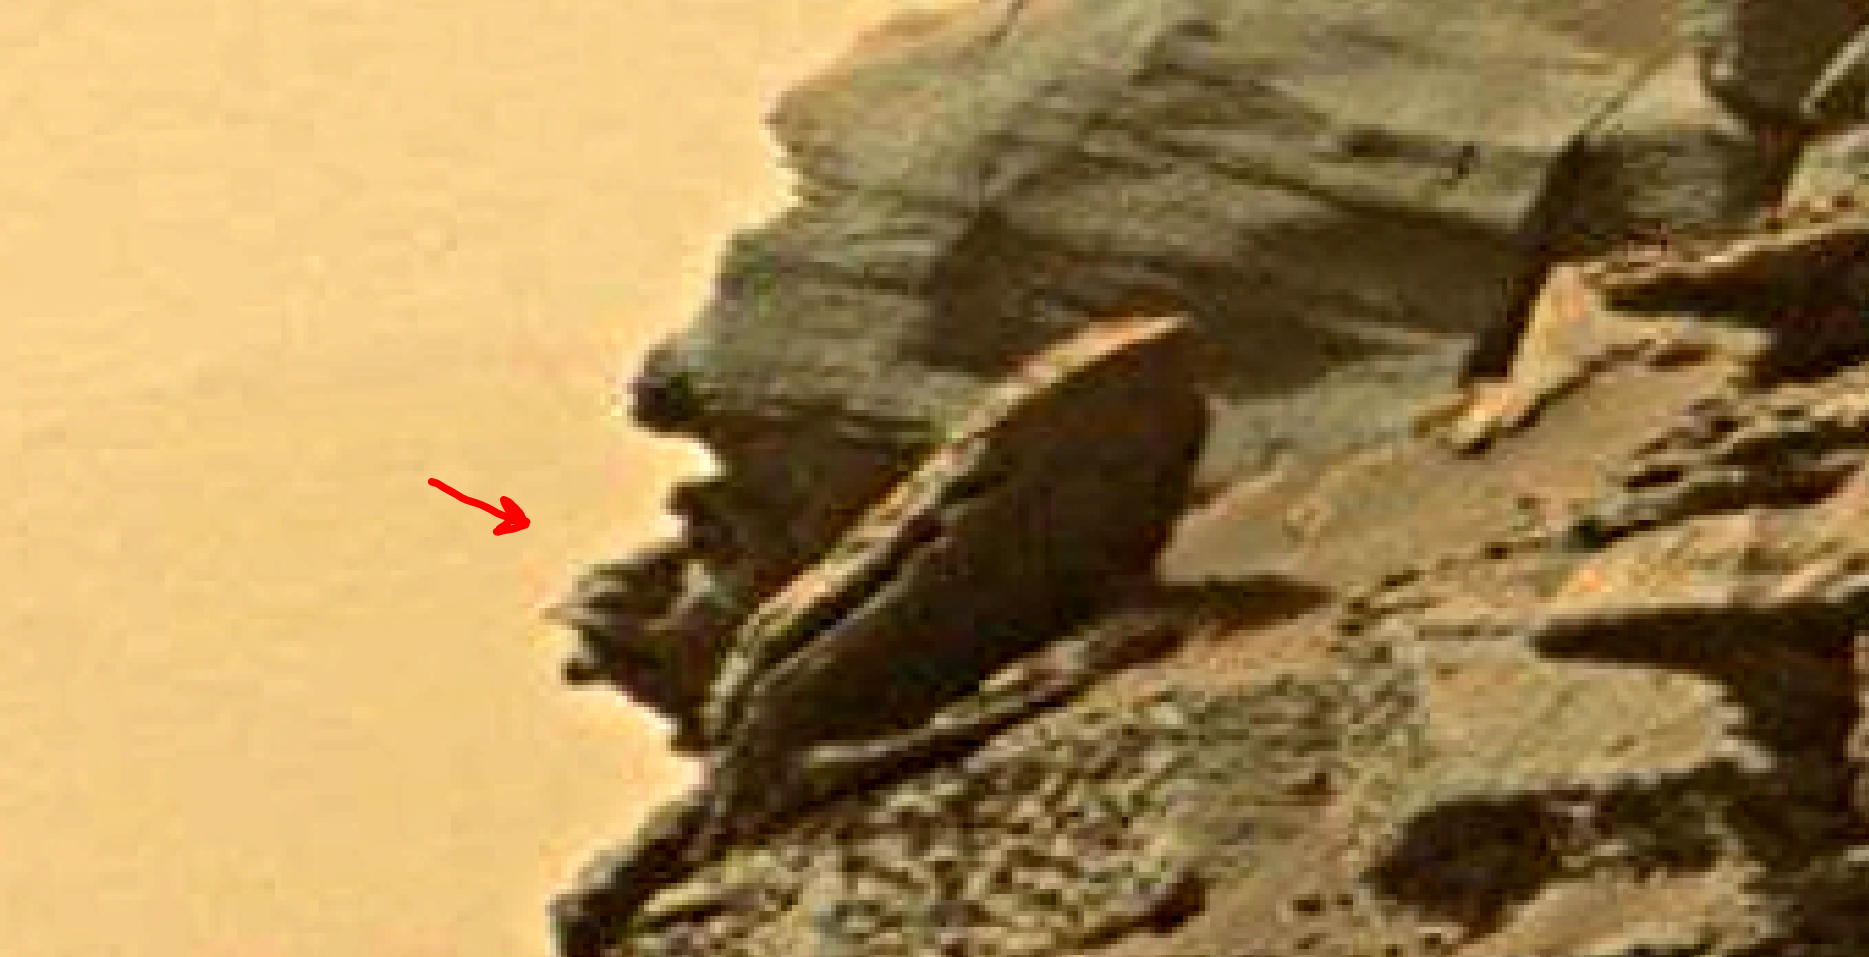 mars-sol-1454-anomaly-artifacts-2-was-life-on-mars